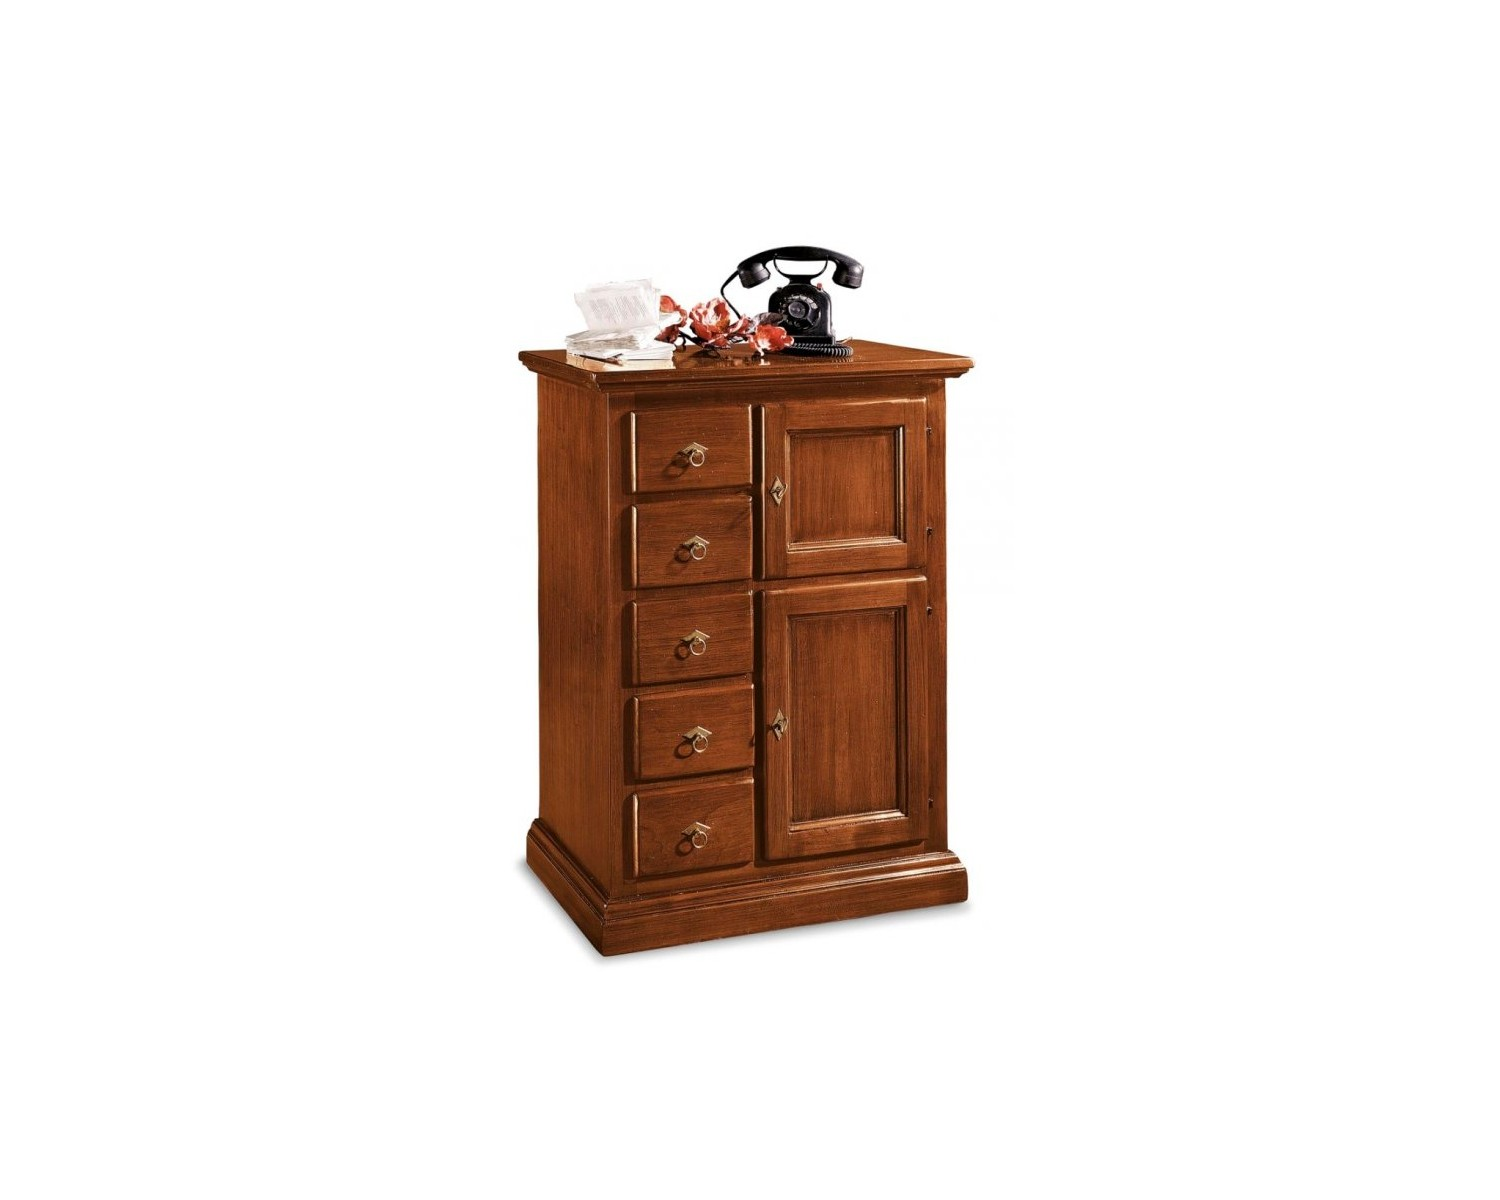 Sideboard wood credenza cassettiera 5 drawers l 75 p 40 h 100 - Mobile credenza ...